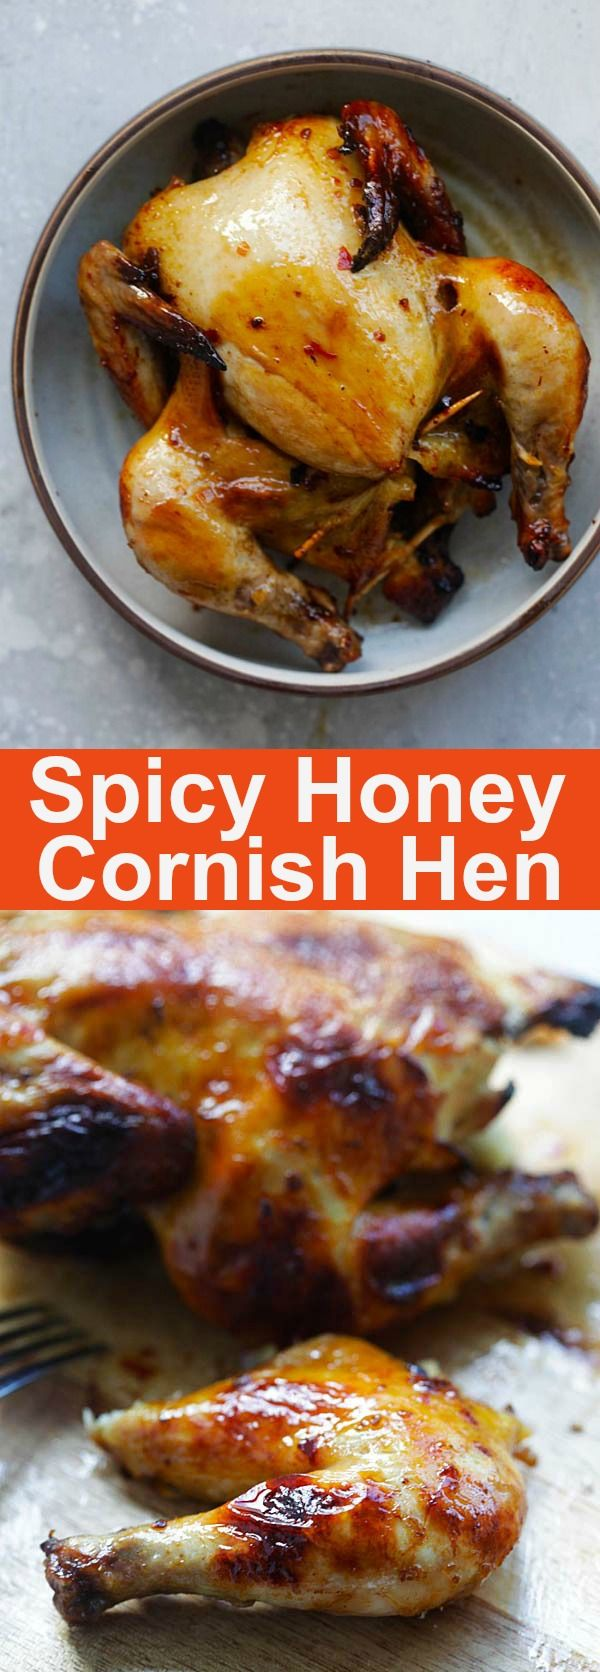 Spicy Honey Roasted Cornish Hen – tender, juicy and perfectly roasted Cornish Hen with honey and spices. So good you'll eat the whole bird | rasamalaysia.com